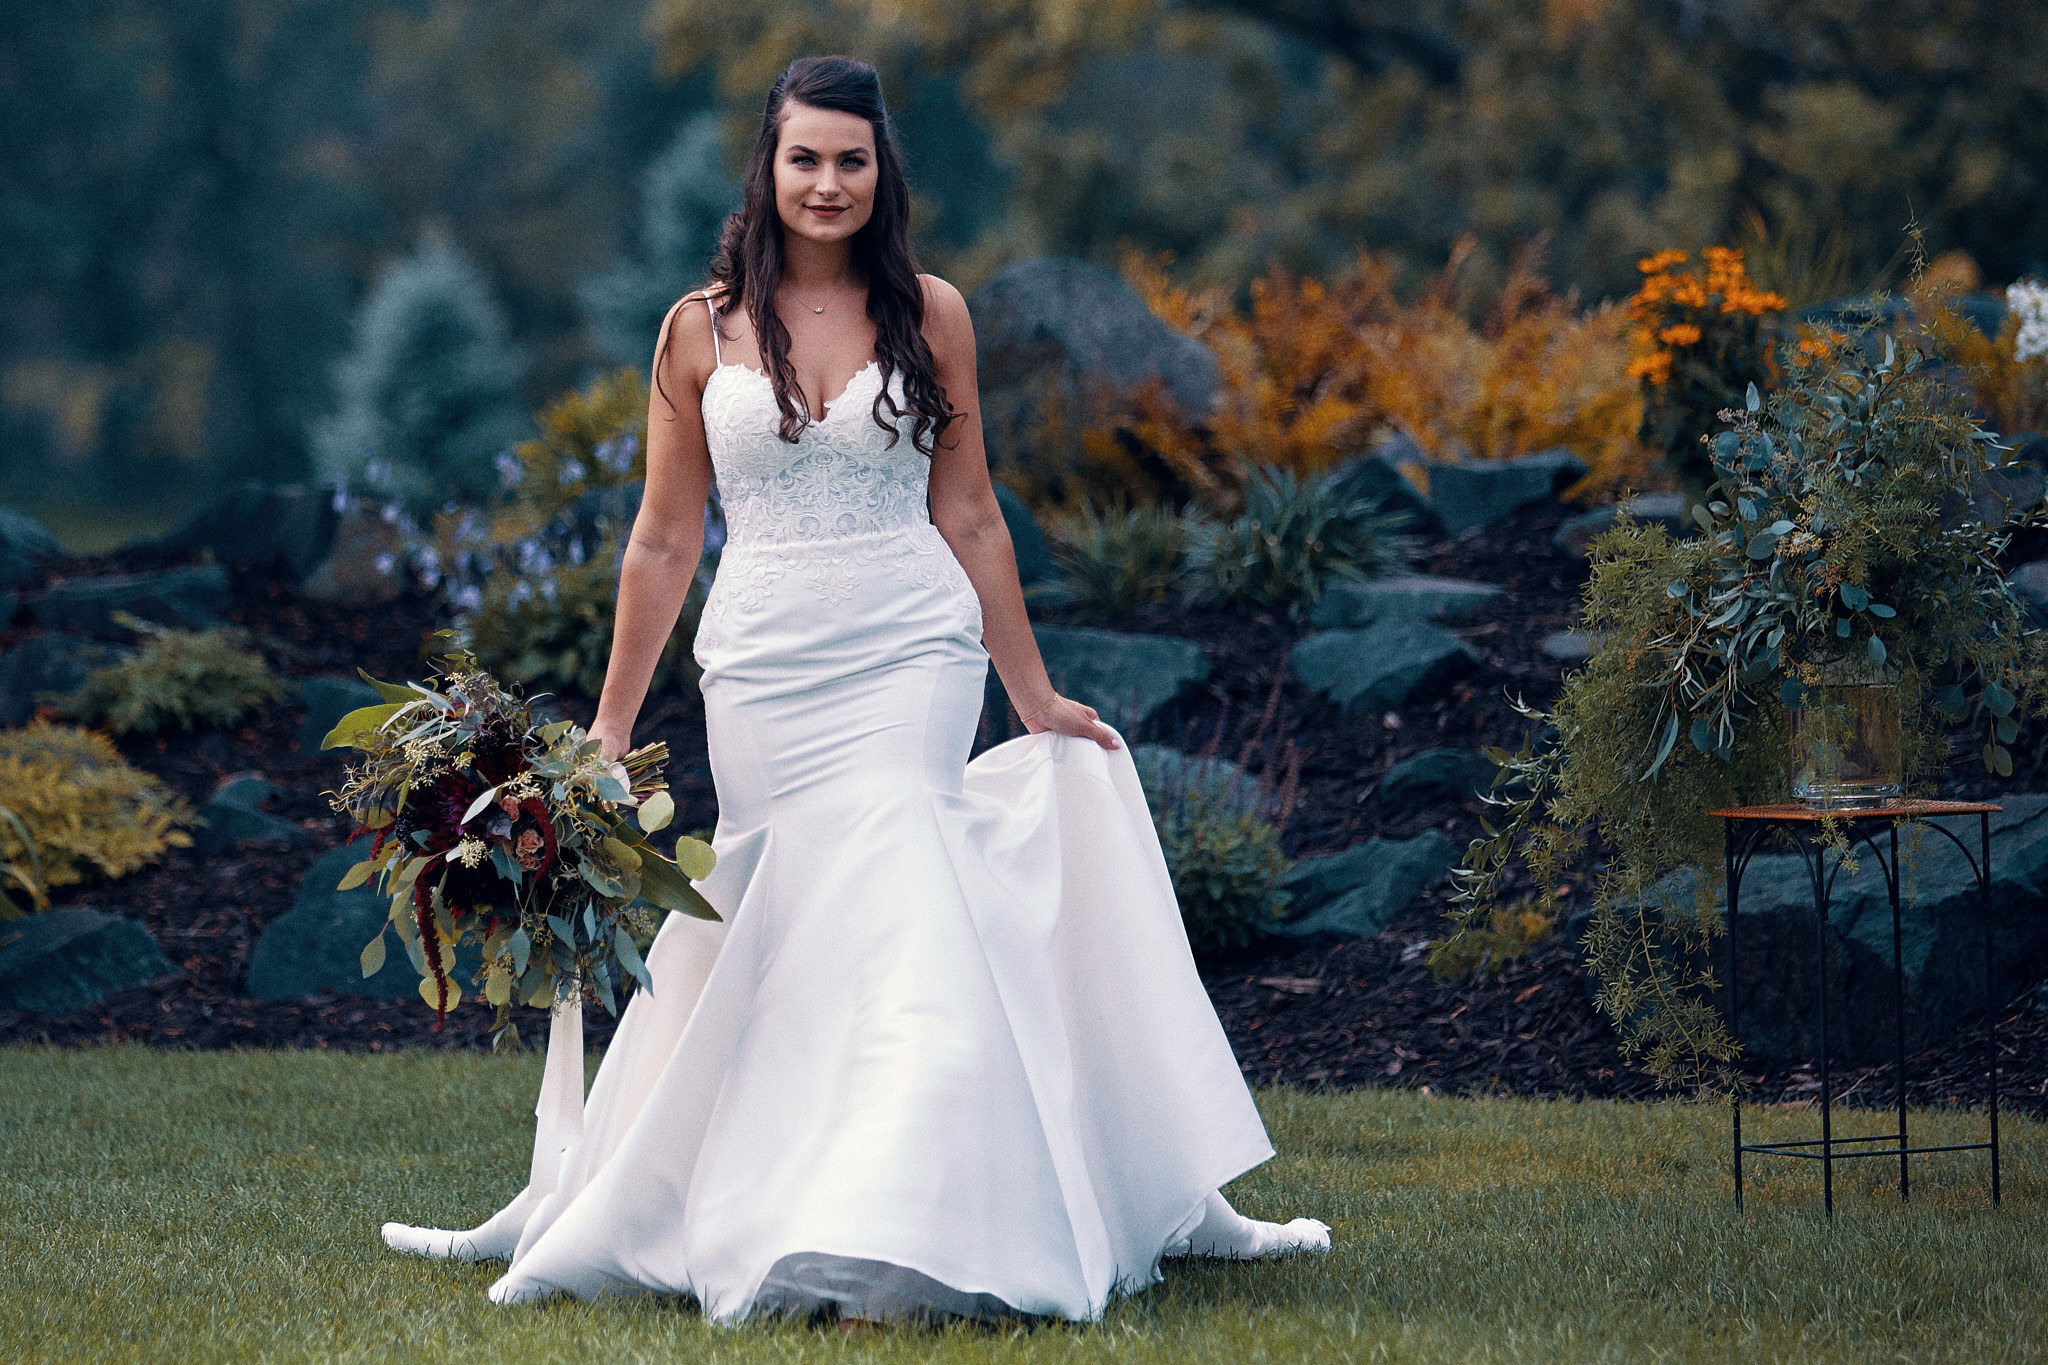 Delwood_Country_Club_In_White_Bear_Lake_Wedding_And_Engaement_Photographer_In_Minnesota_High_End_Brand_Something_Candid_008.JPG